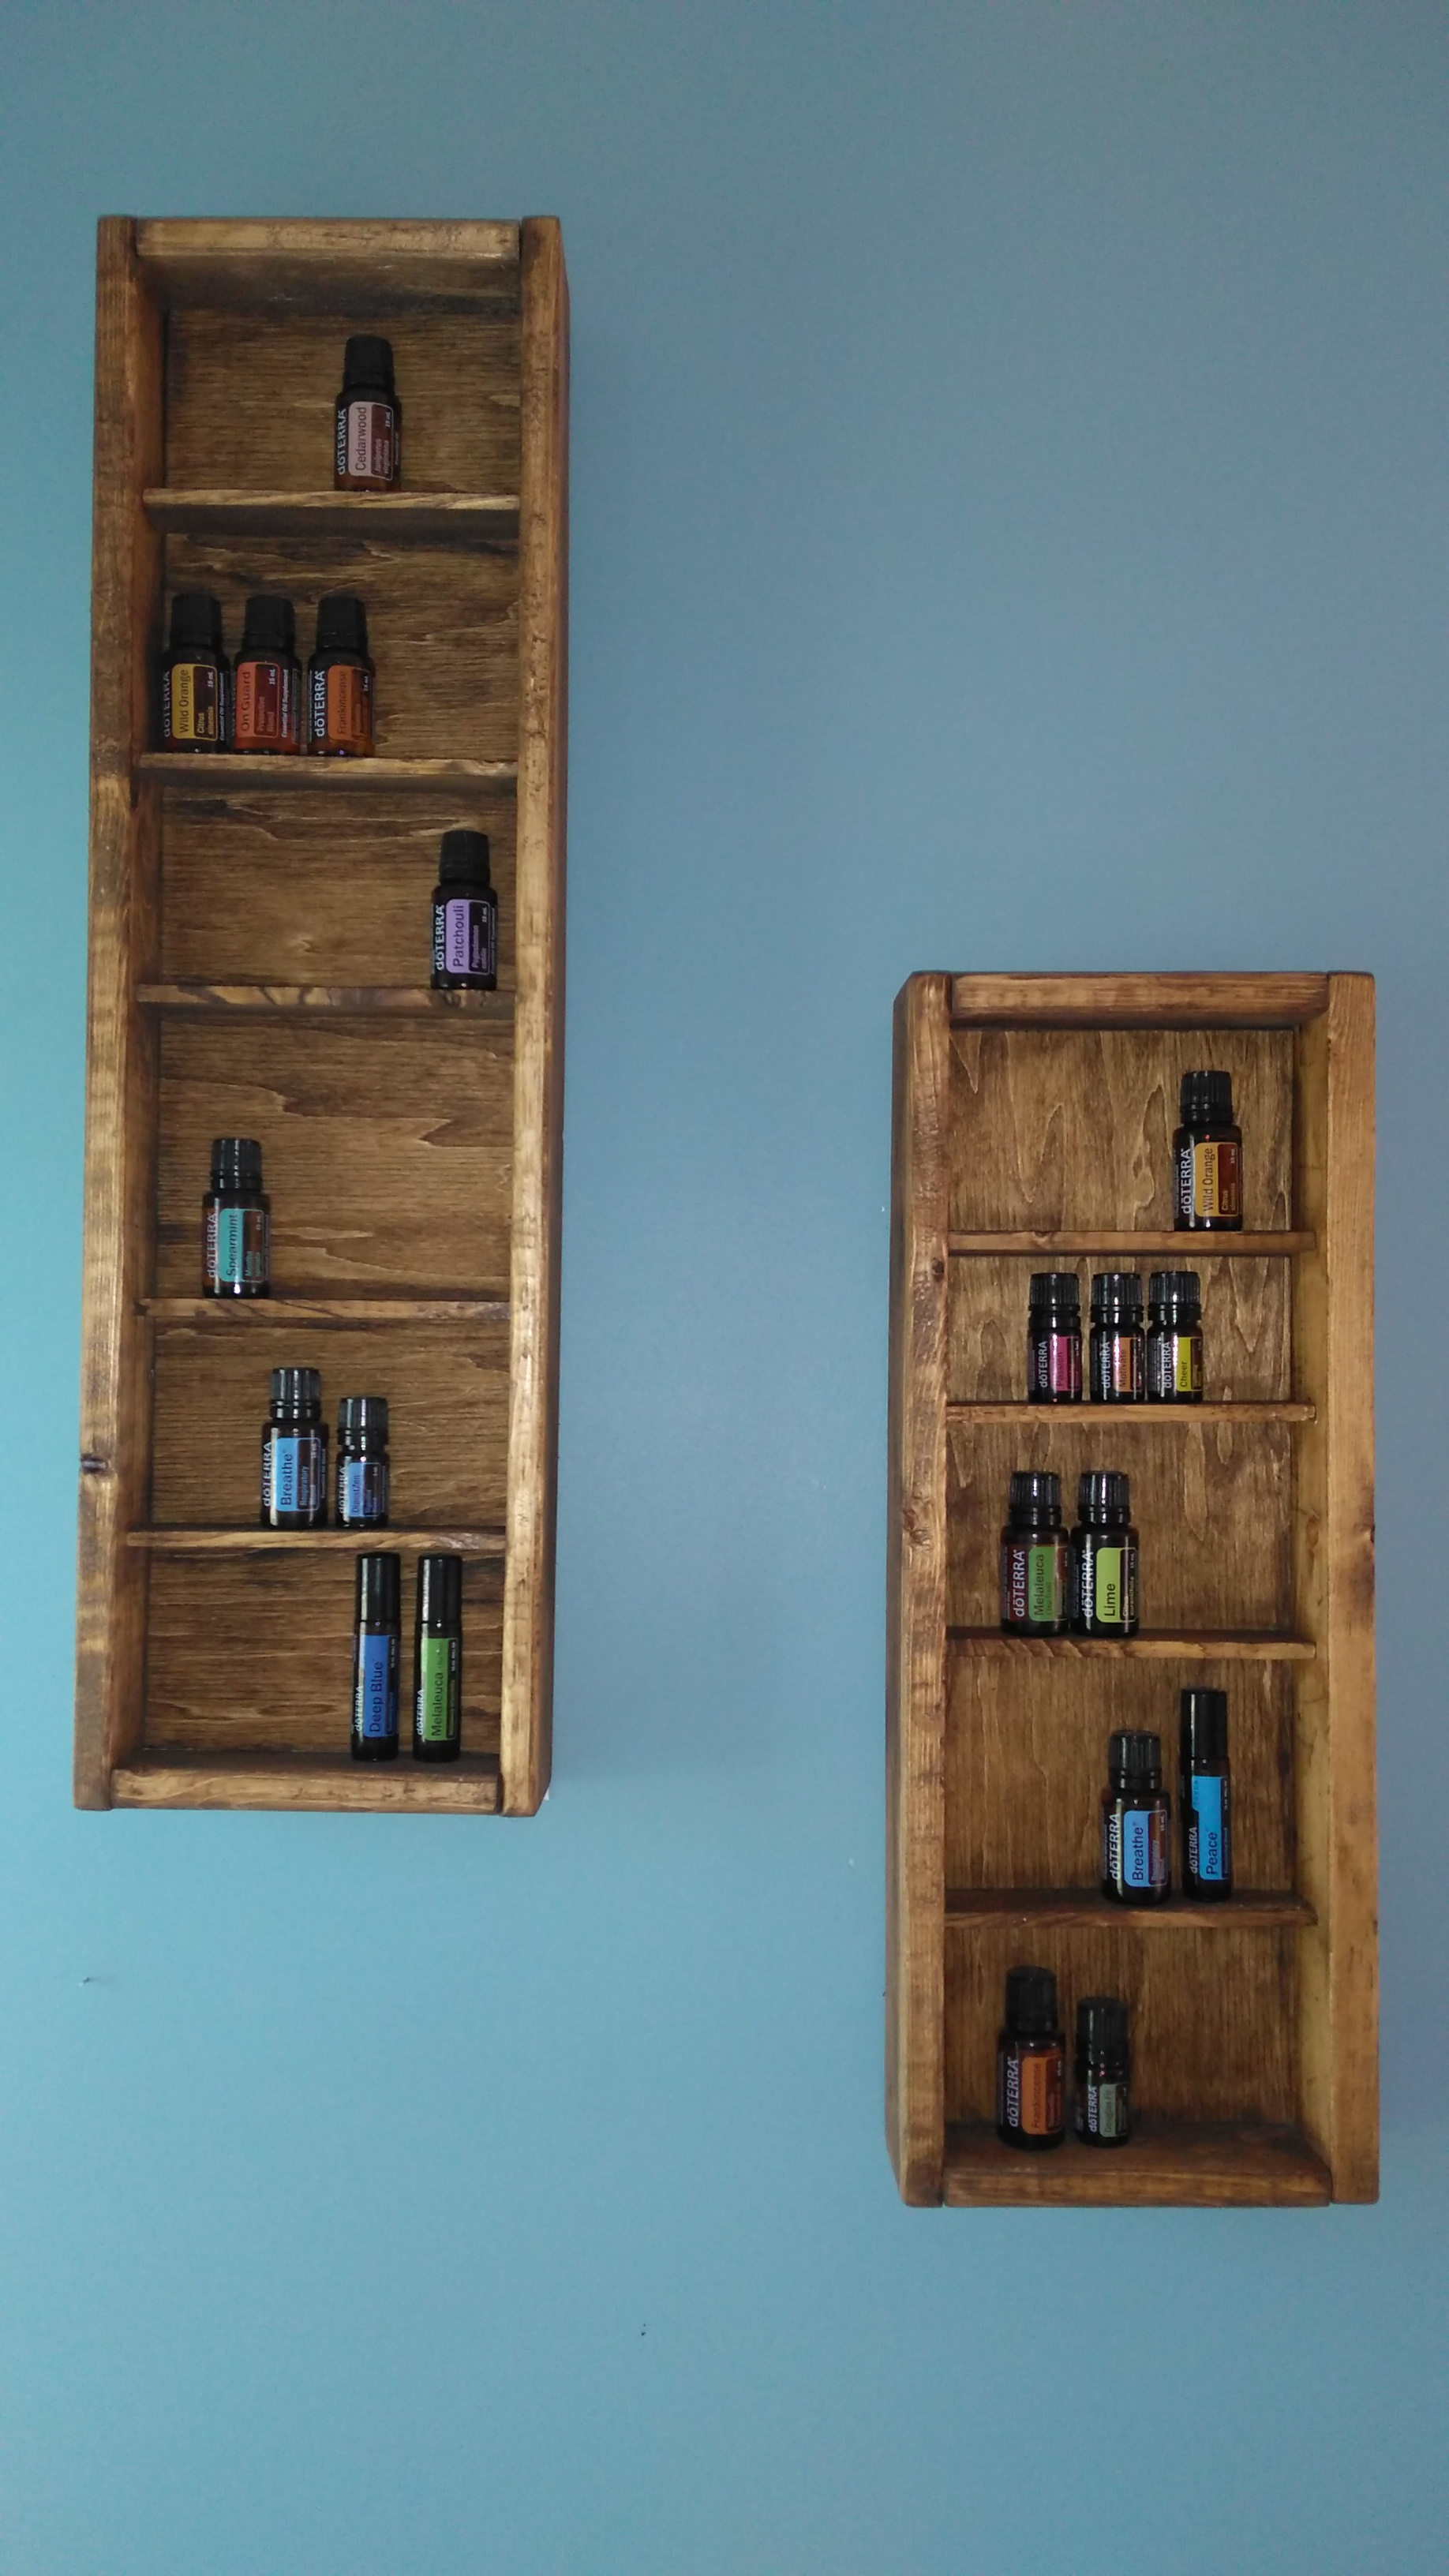 custom built shelves for oil display and storage.